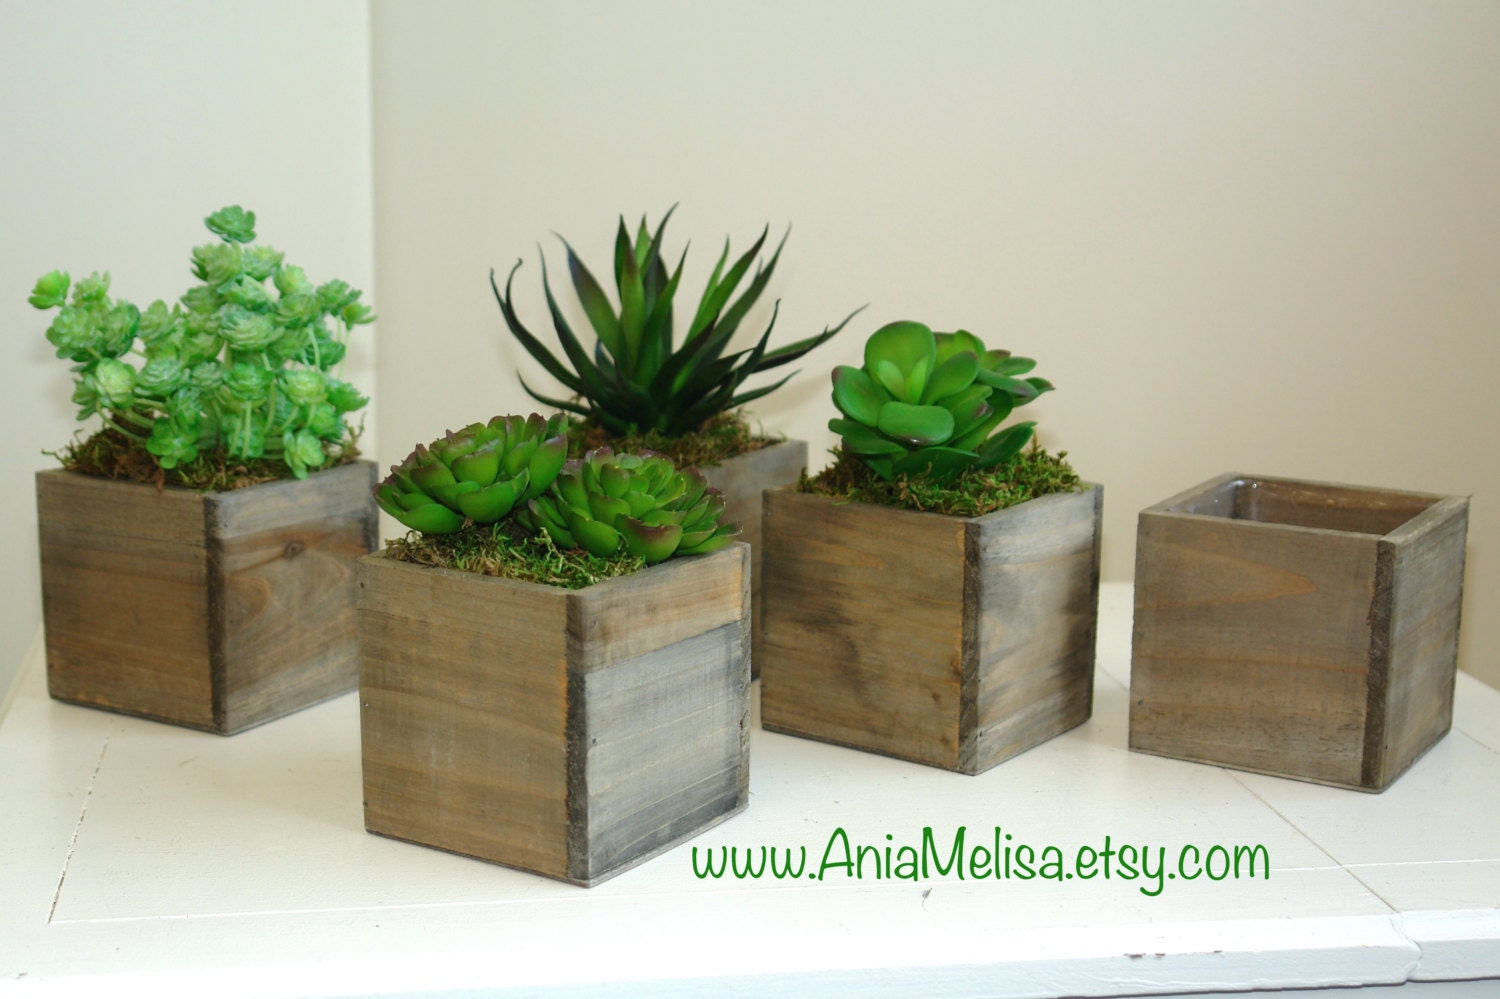 Wood Box Boxes Succulent Planter Flower Rustic Pot Square